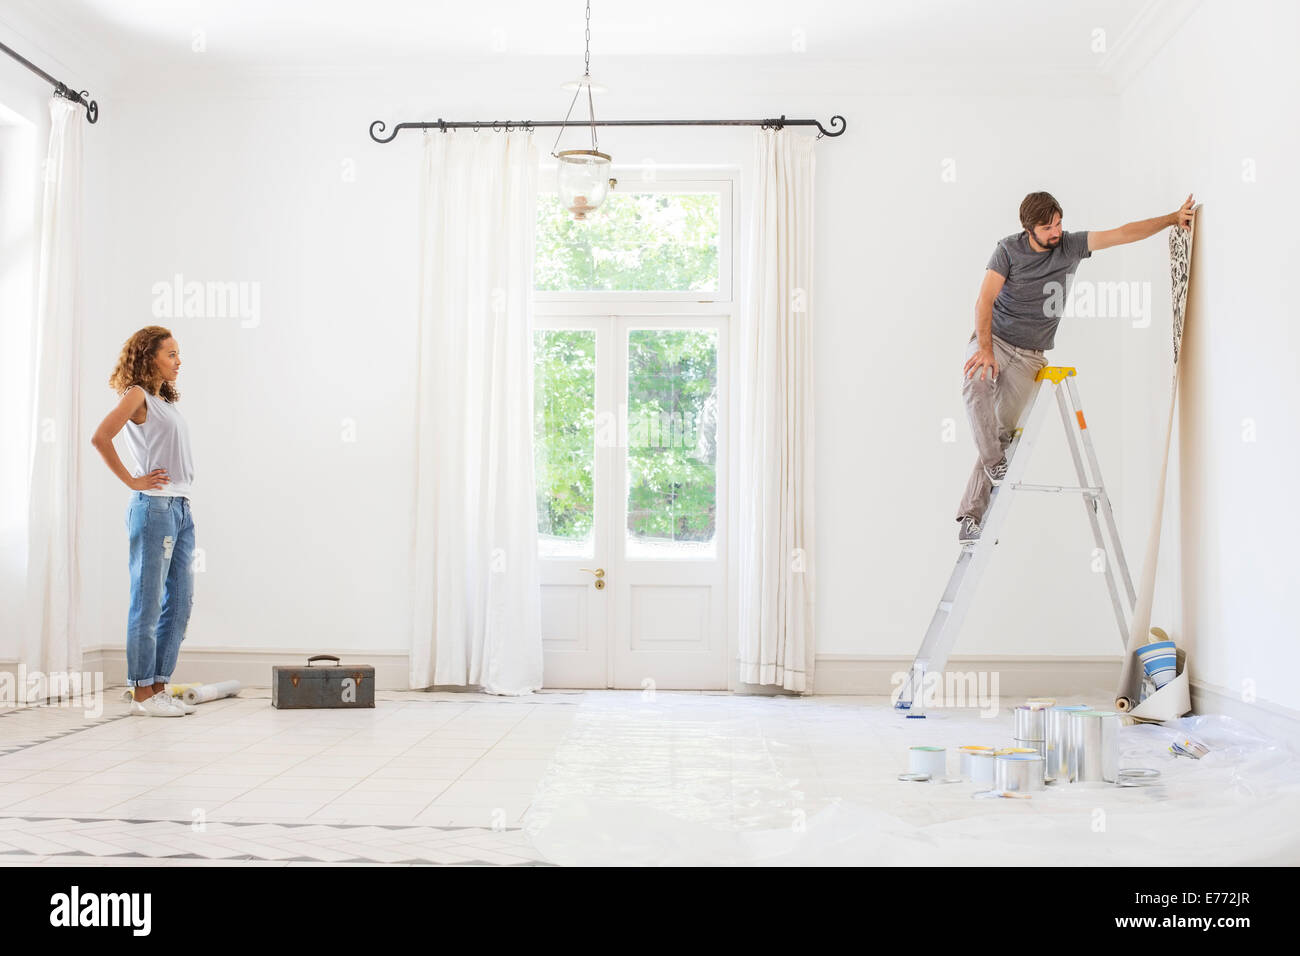 Couple hanging wallpaper together - Stock Image